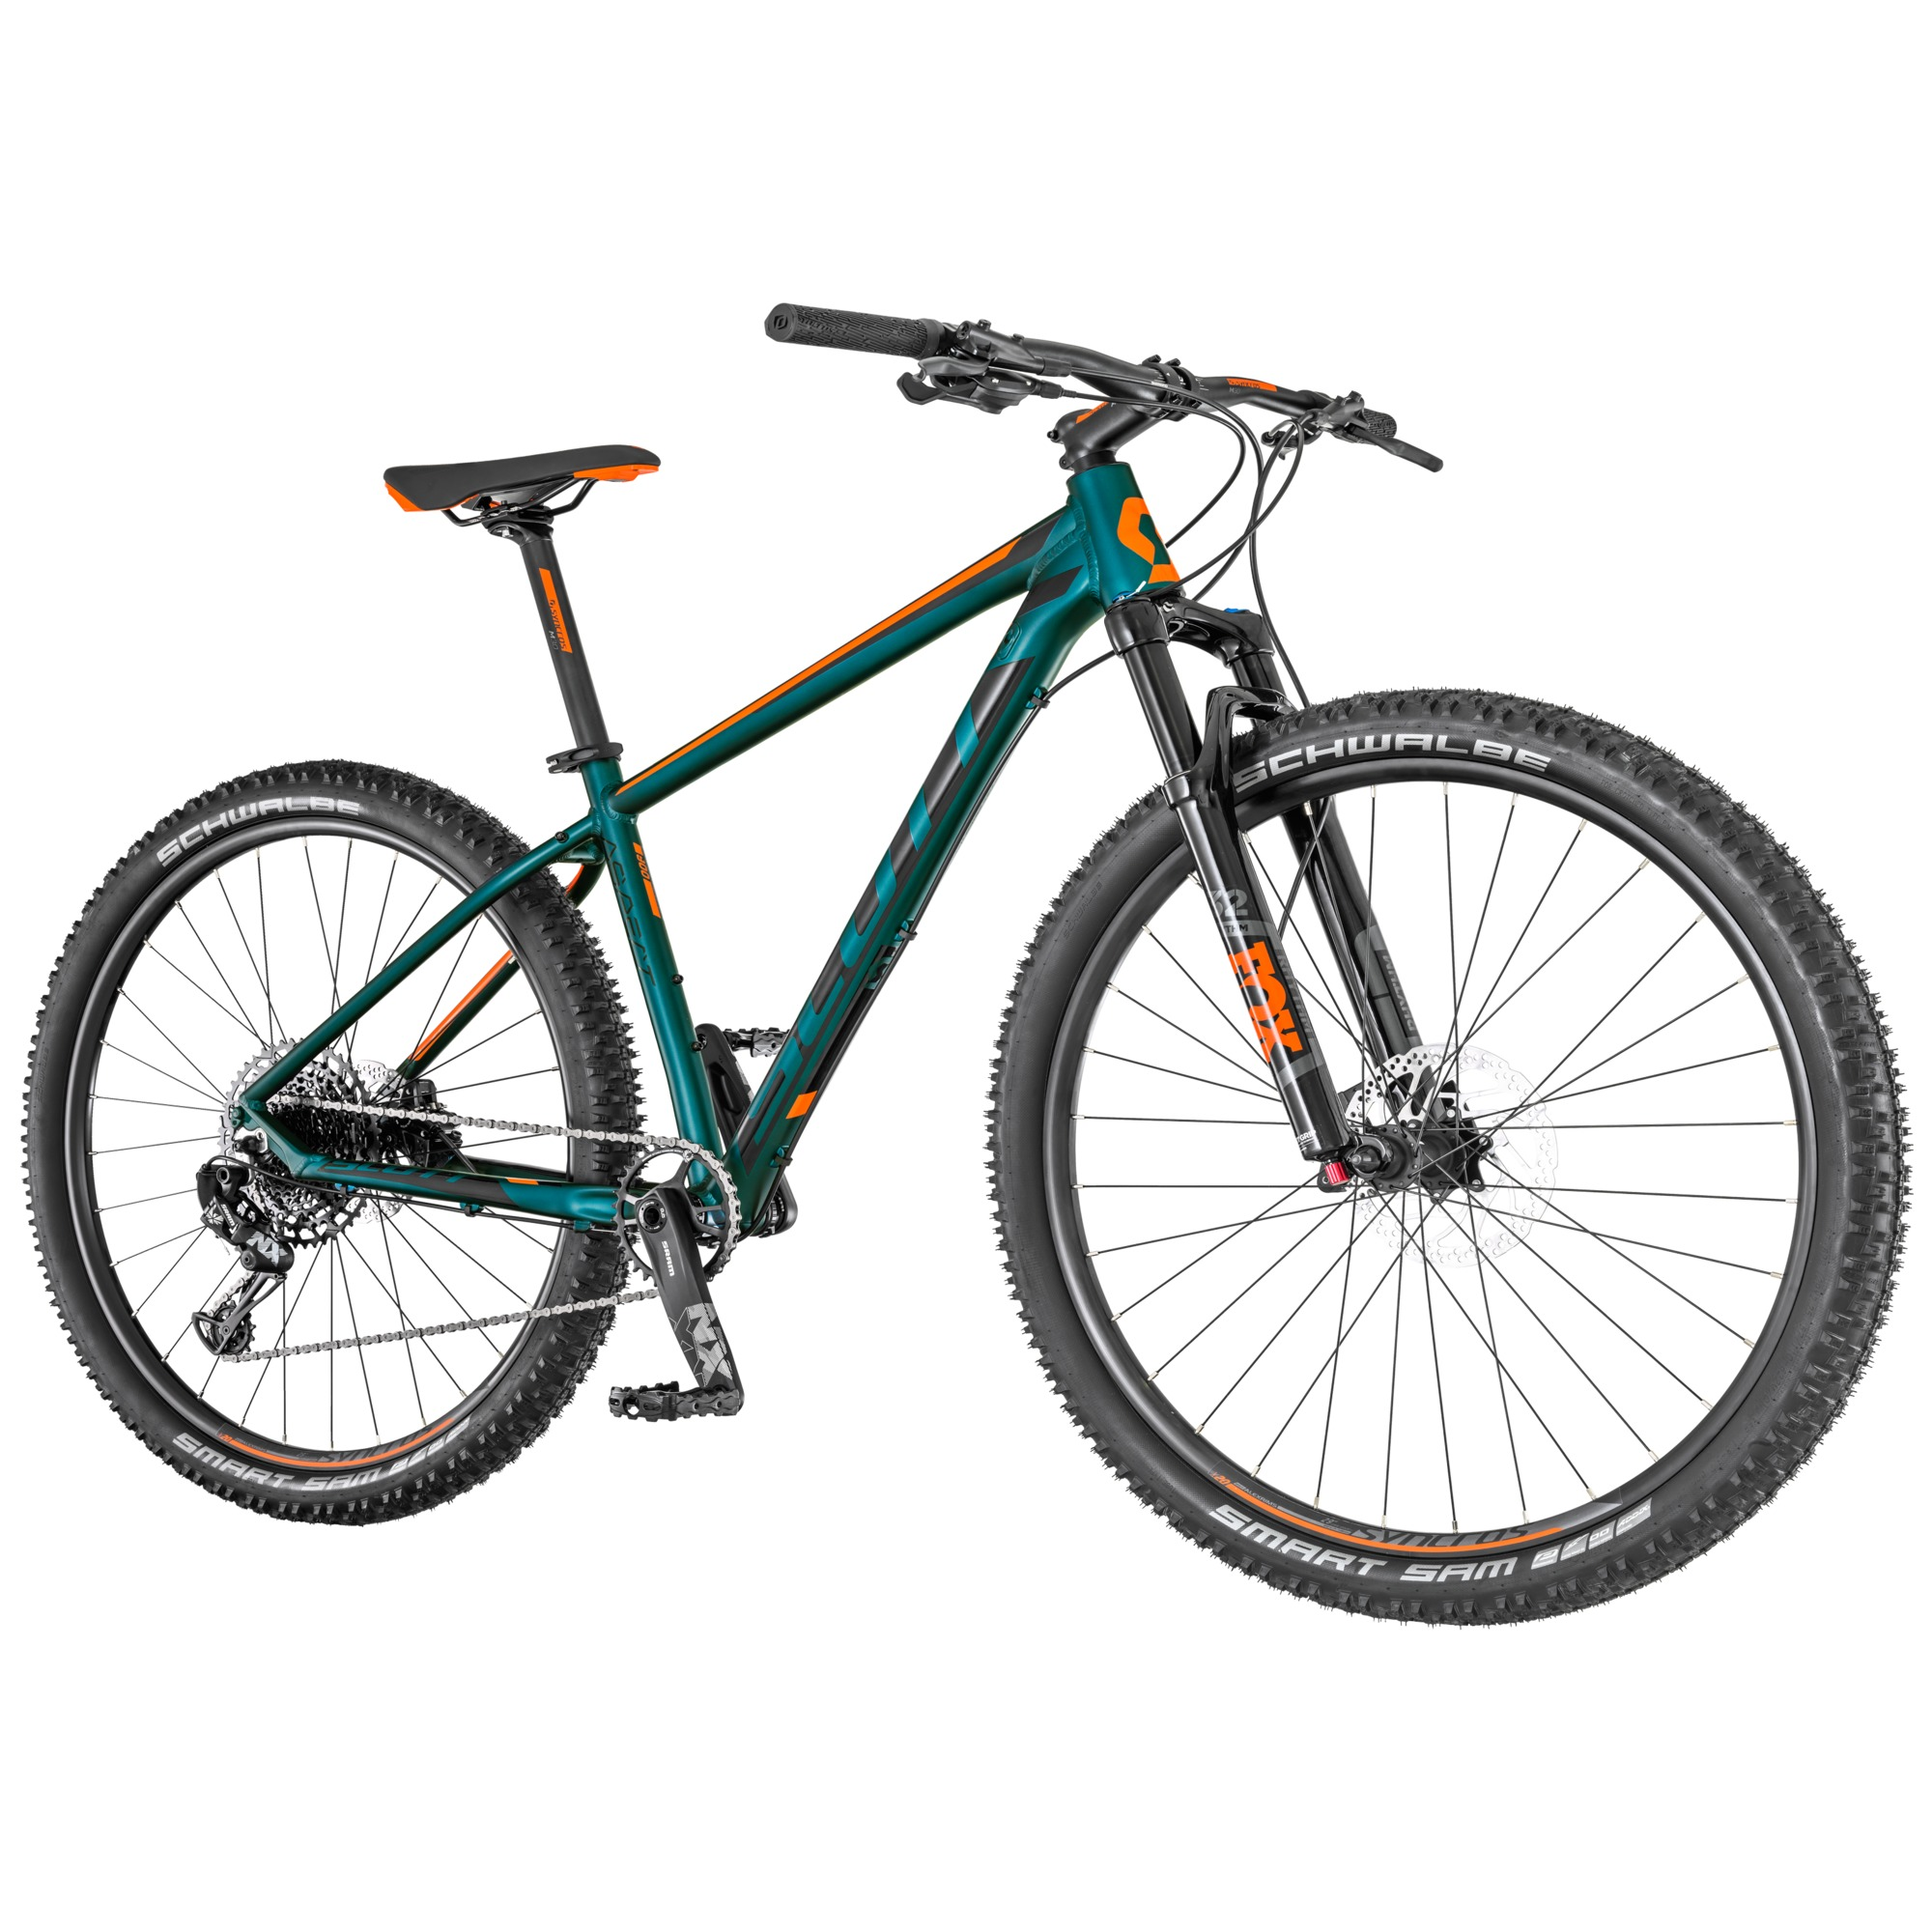 Bicicletta SCOTT Aspect 900 cobalt green/orange